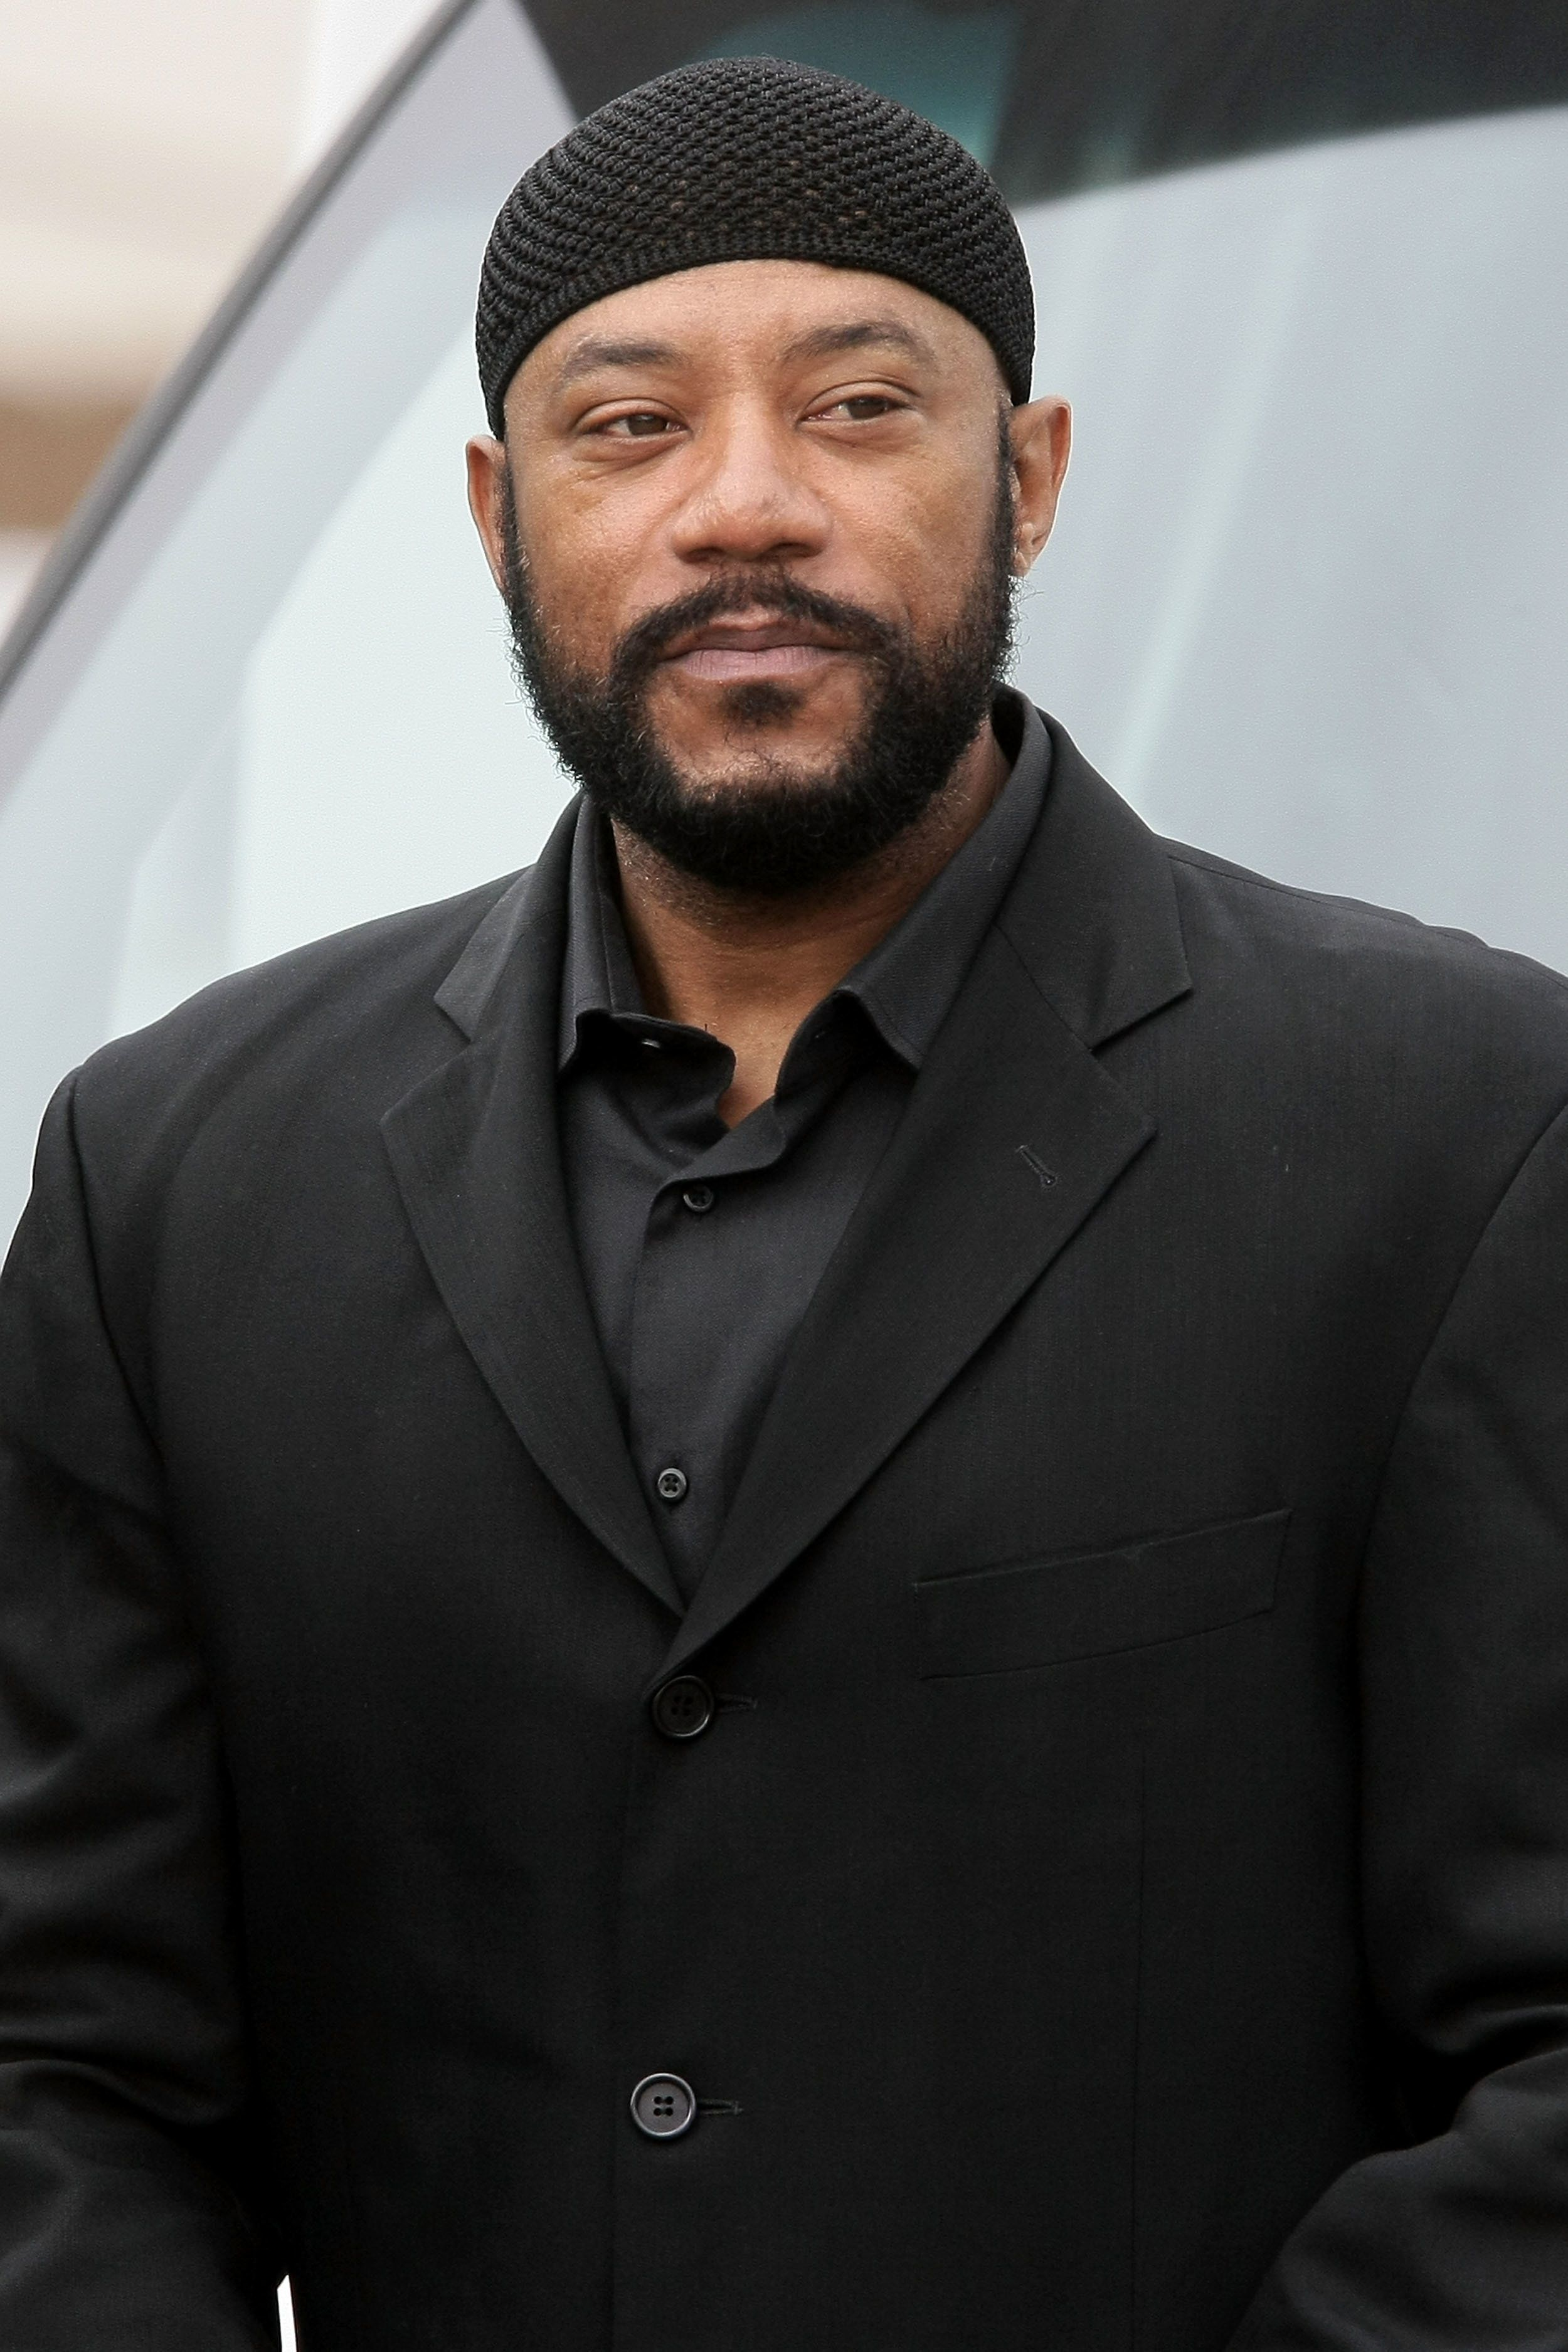 Ricky Harris pictured in Long Beach, California in March 2011.